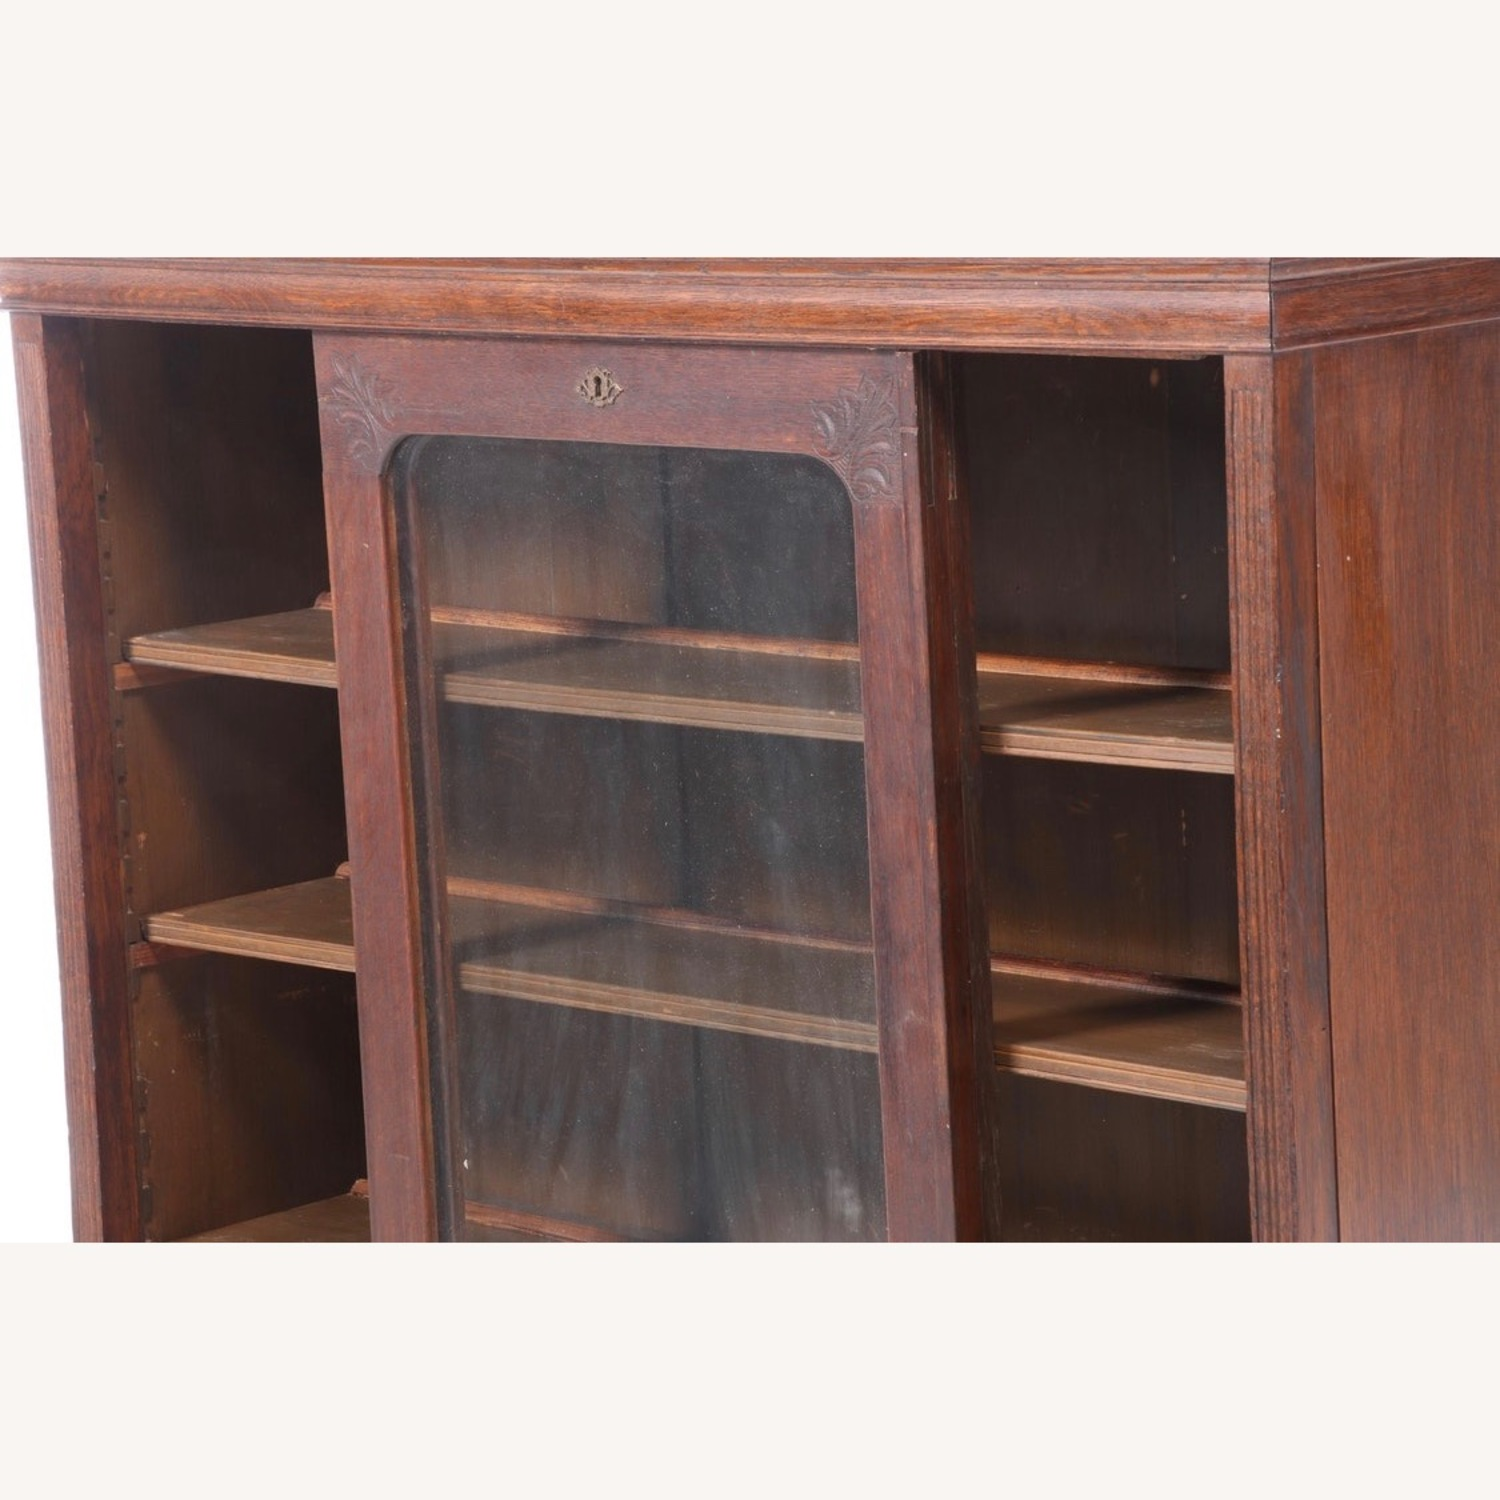 Oak Bookcase Cabinet, Early 20th Century - image-7